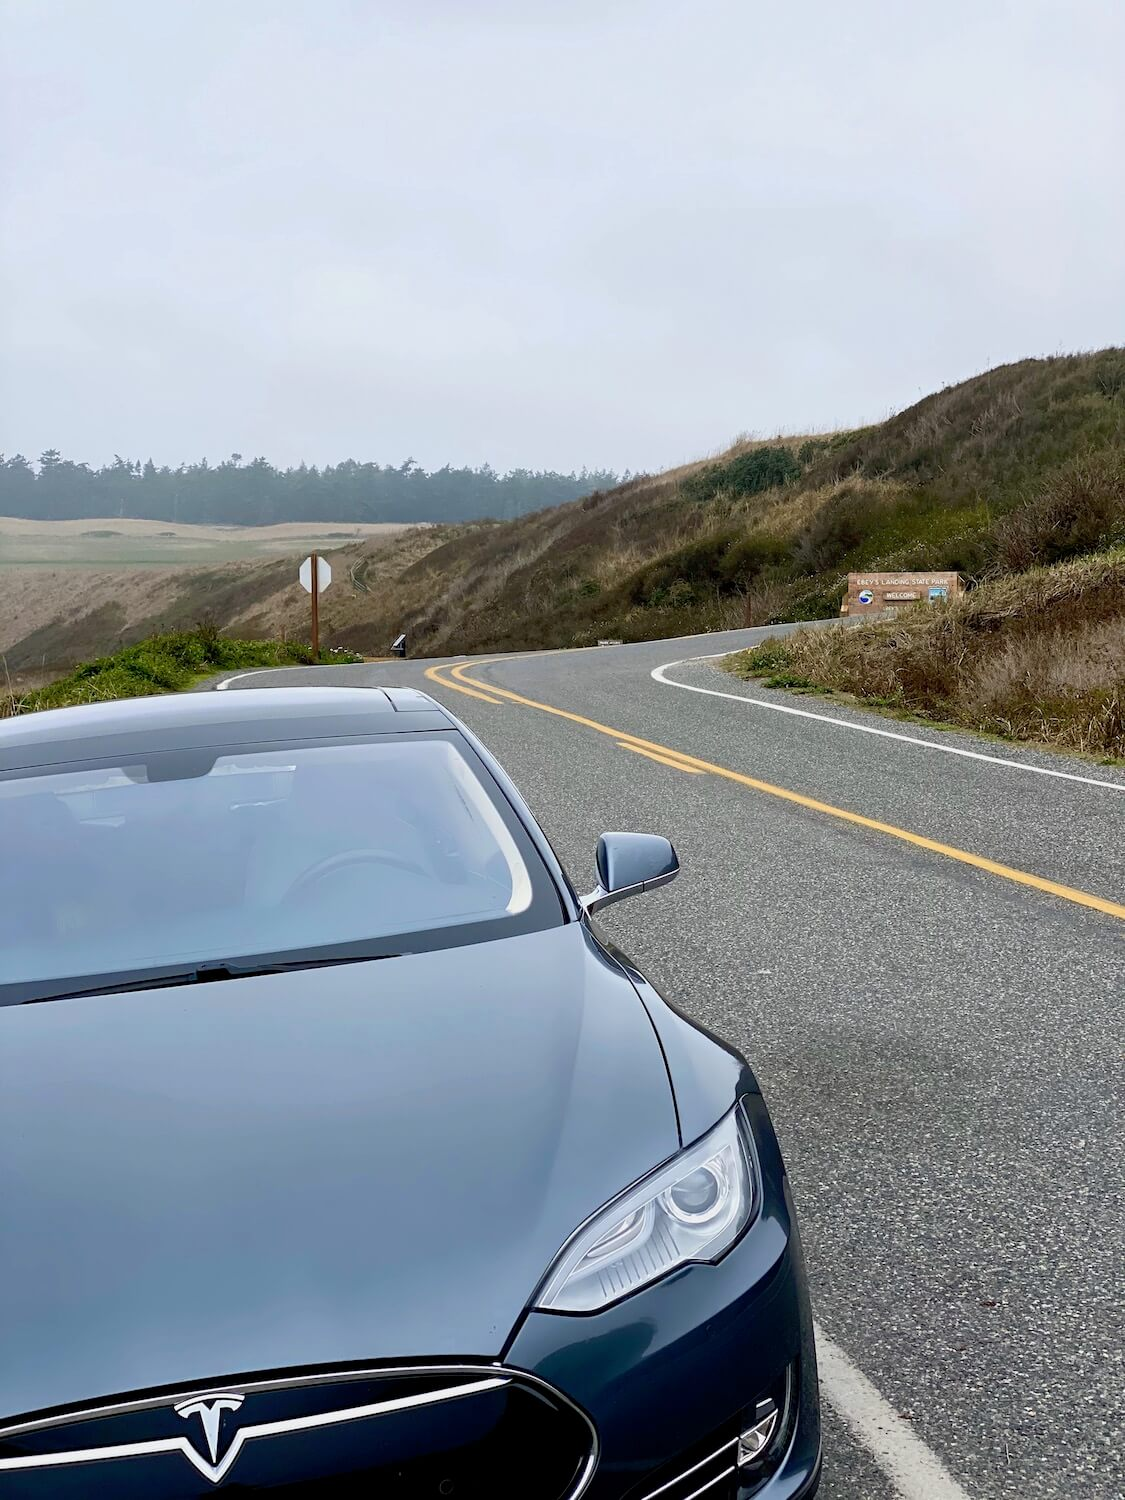 A gray colored Tesla S series sits parked on the side of a winding coastal road in the Puget Sound of Washington State.  There are rolling hills with green sea grass and fir trees in the background.